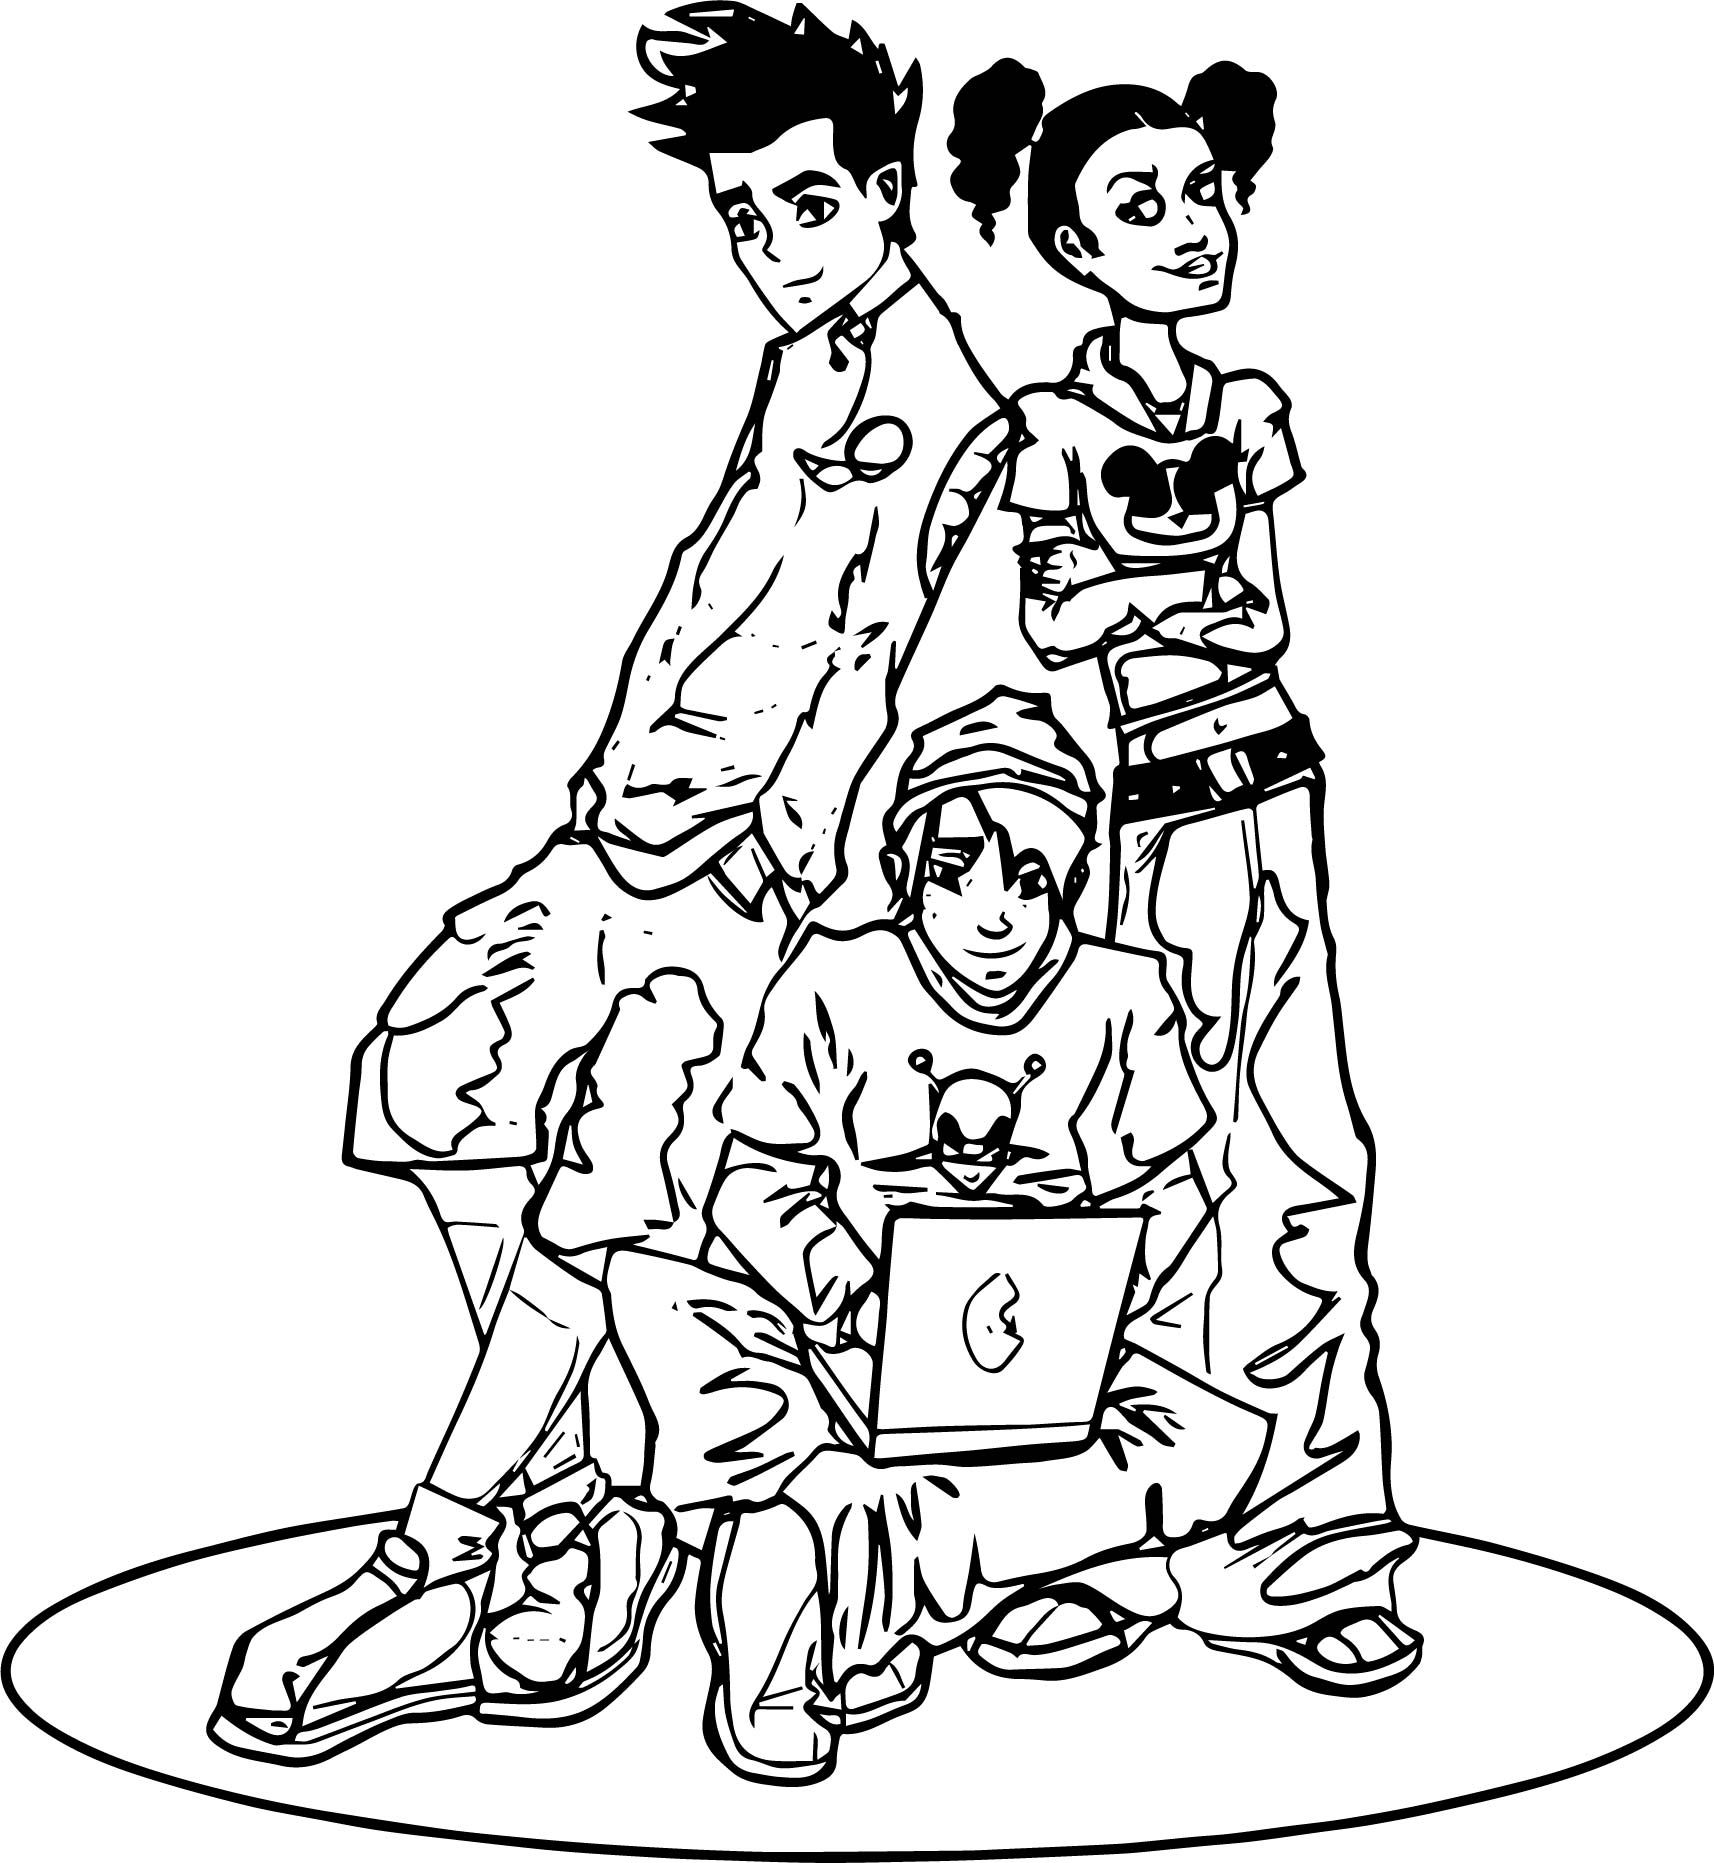 Cool American Dragon Jake Long Friends Computer Coloring Page